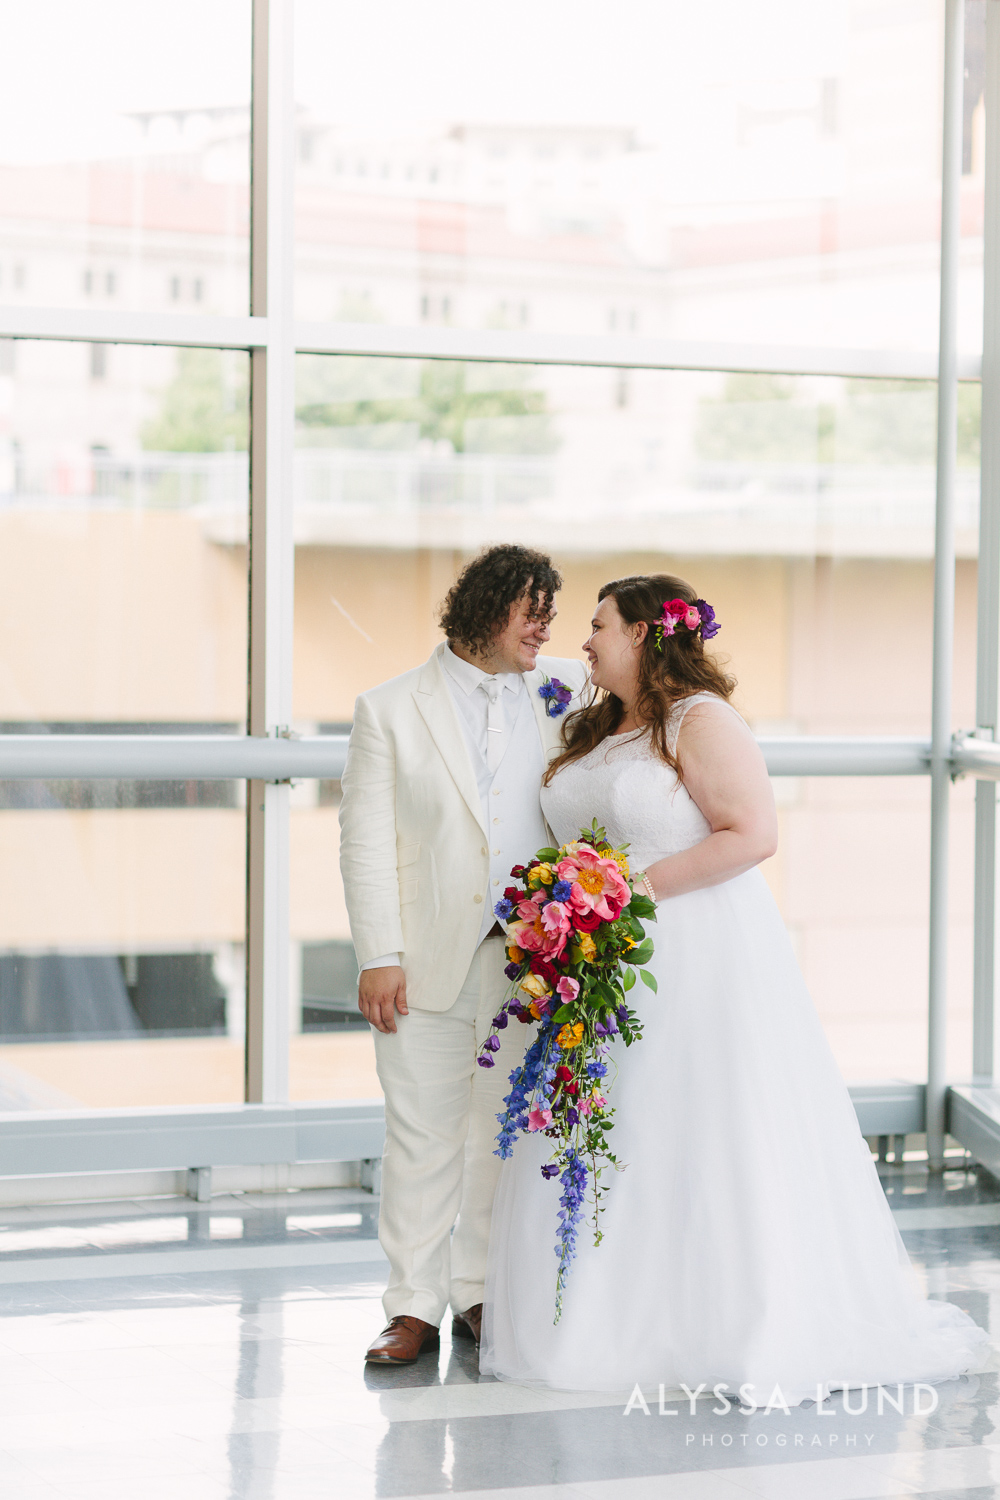 Science Museum of Minnesota Wedding by Alyssa Lund Photography-16.jpg